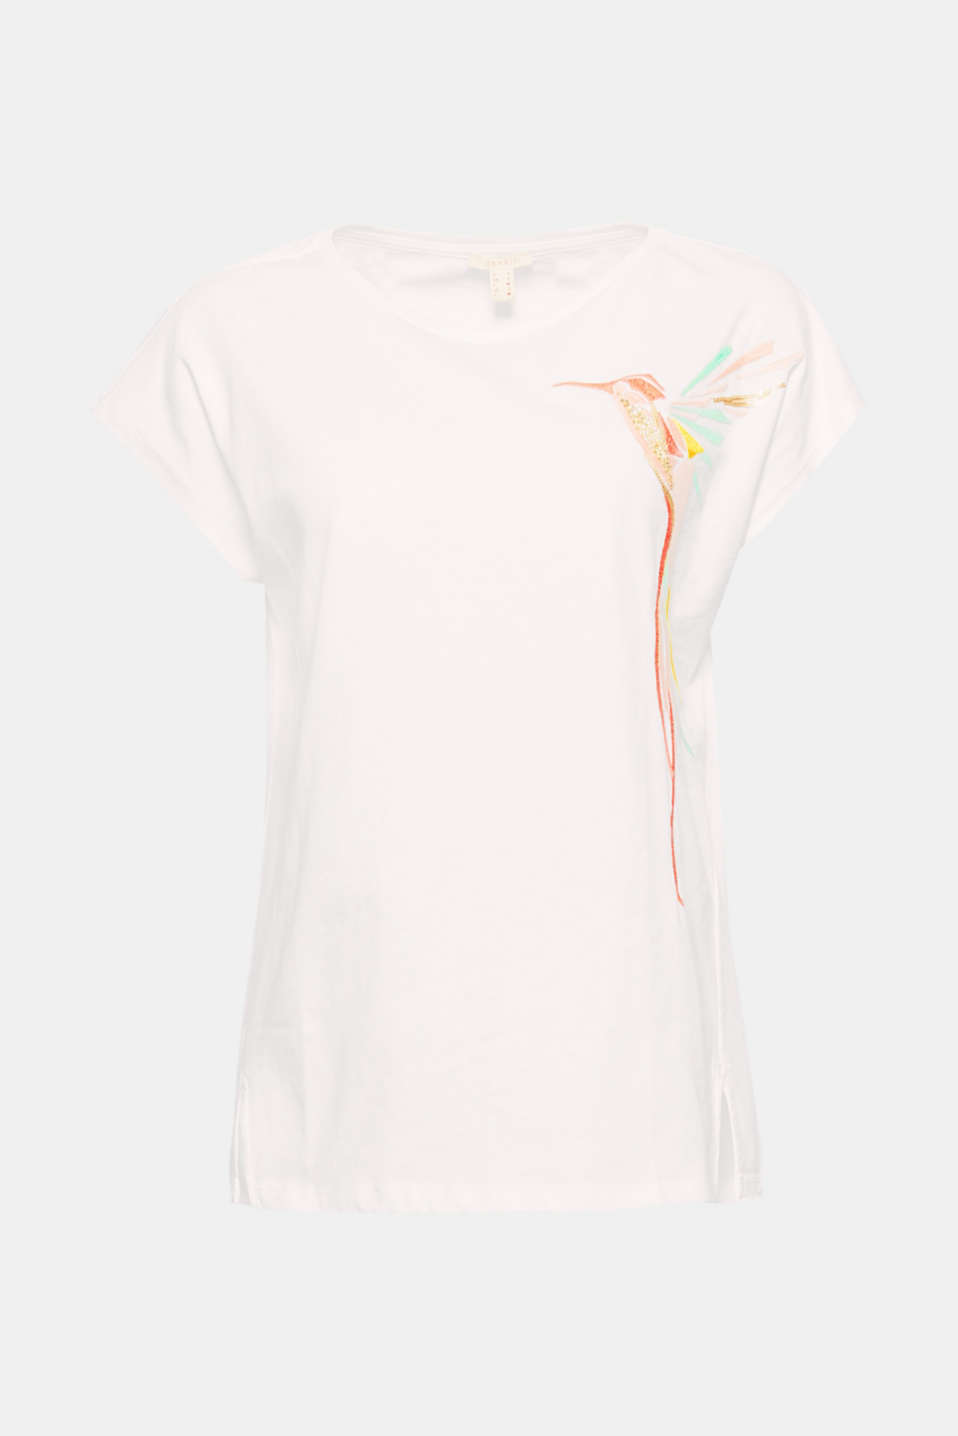 Highlight: an embroidered hummingbird with elegant sequins and beads make this top an eye-catching piece!